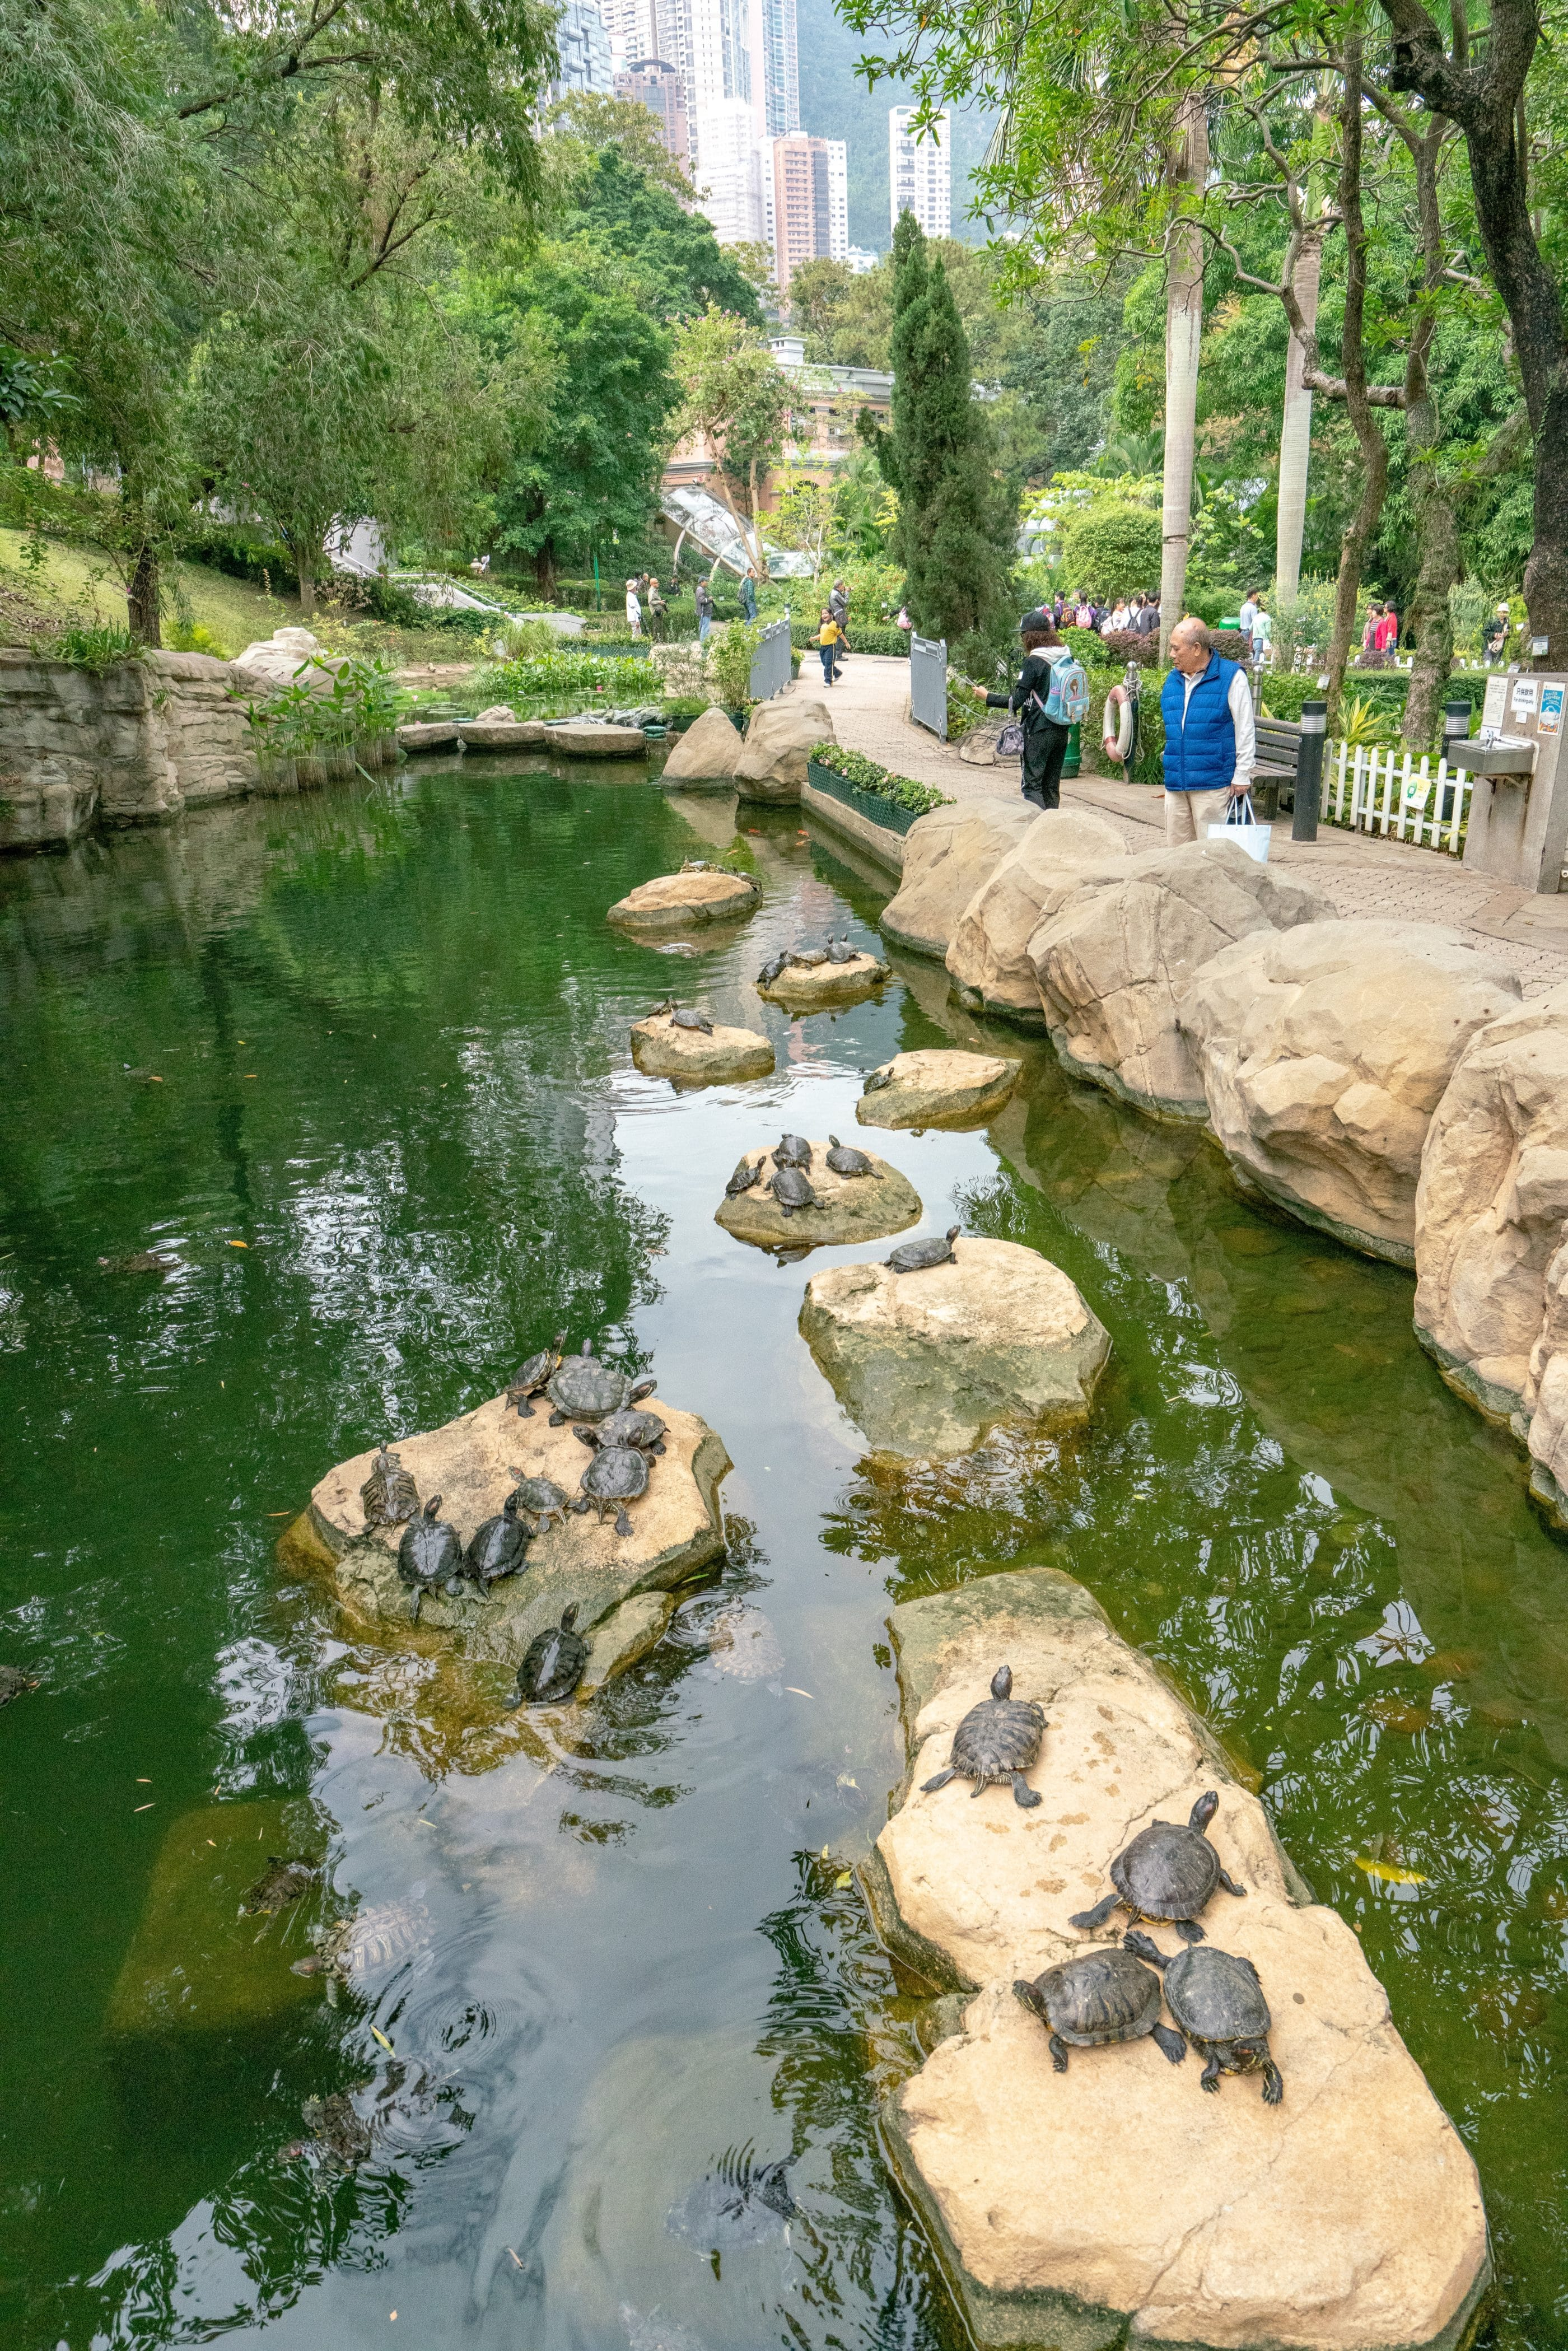 Kids love the turtles in Hong Kong Park along with the playground, waterfall, seasonal butterflies and more.